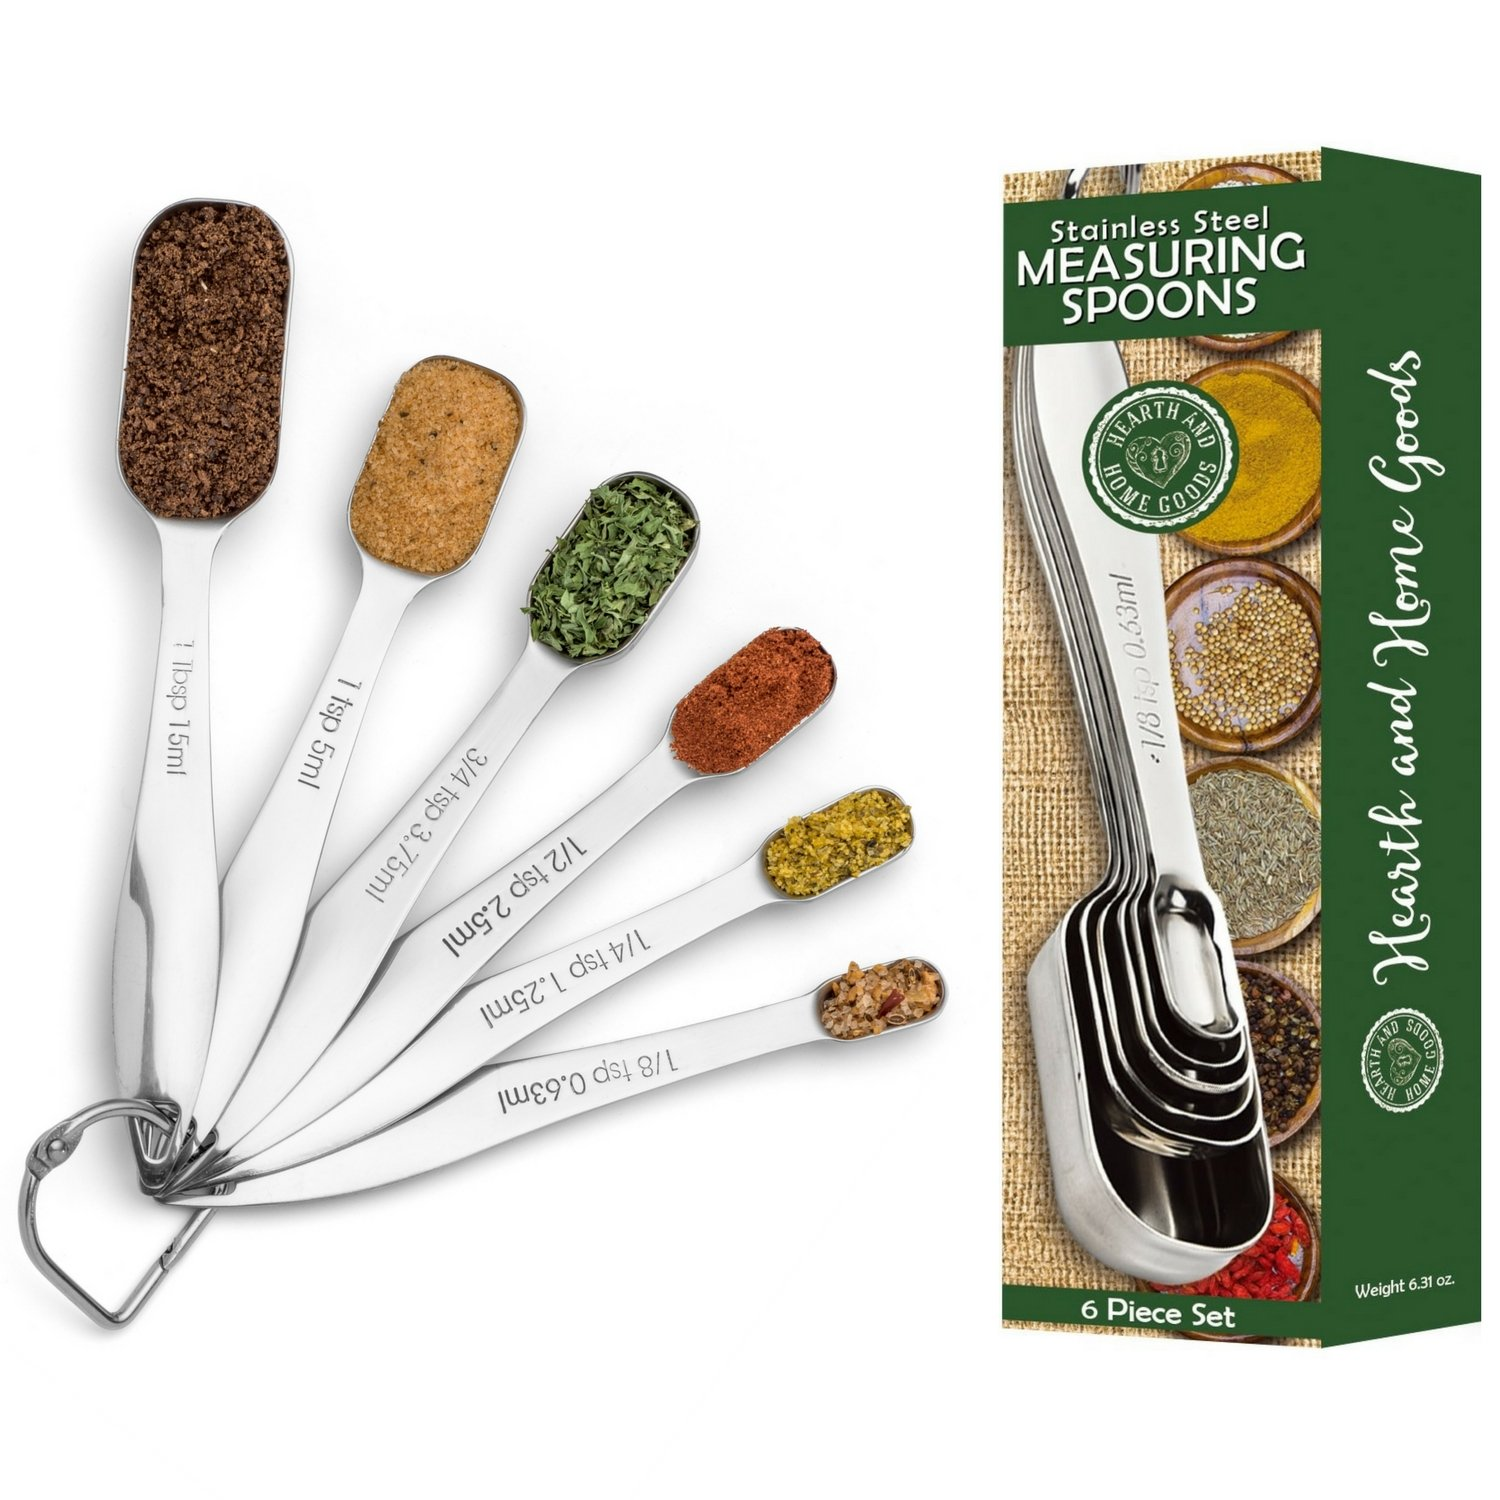 Measuring Spoons - Accurately Measure Liquid and Dry Ingredients